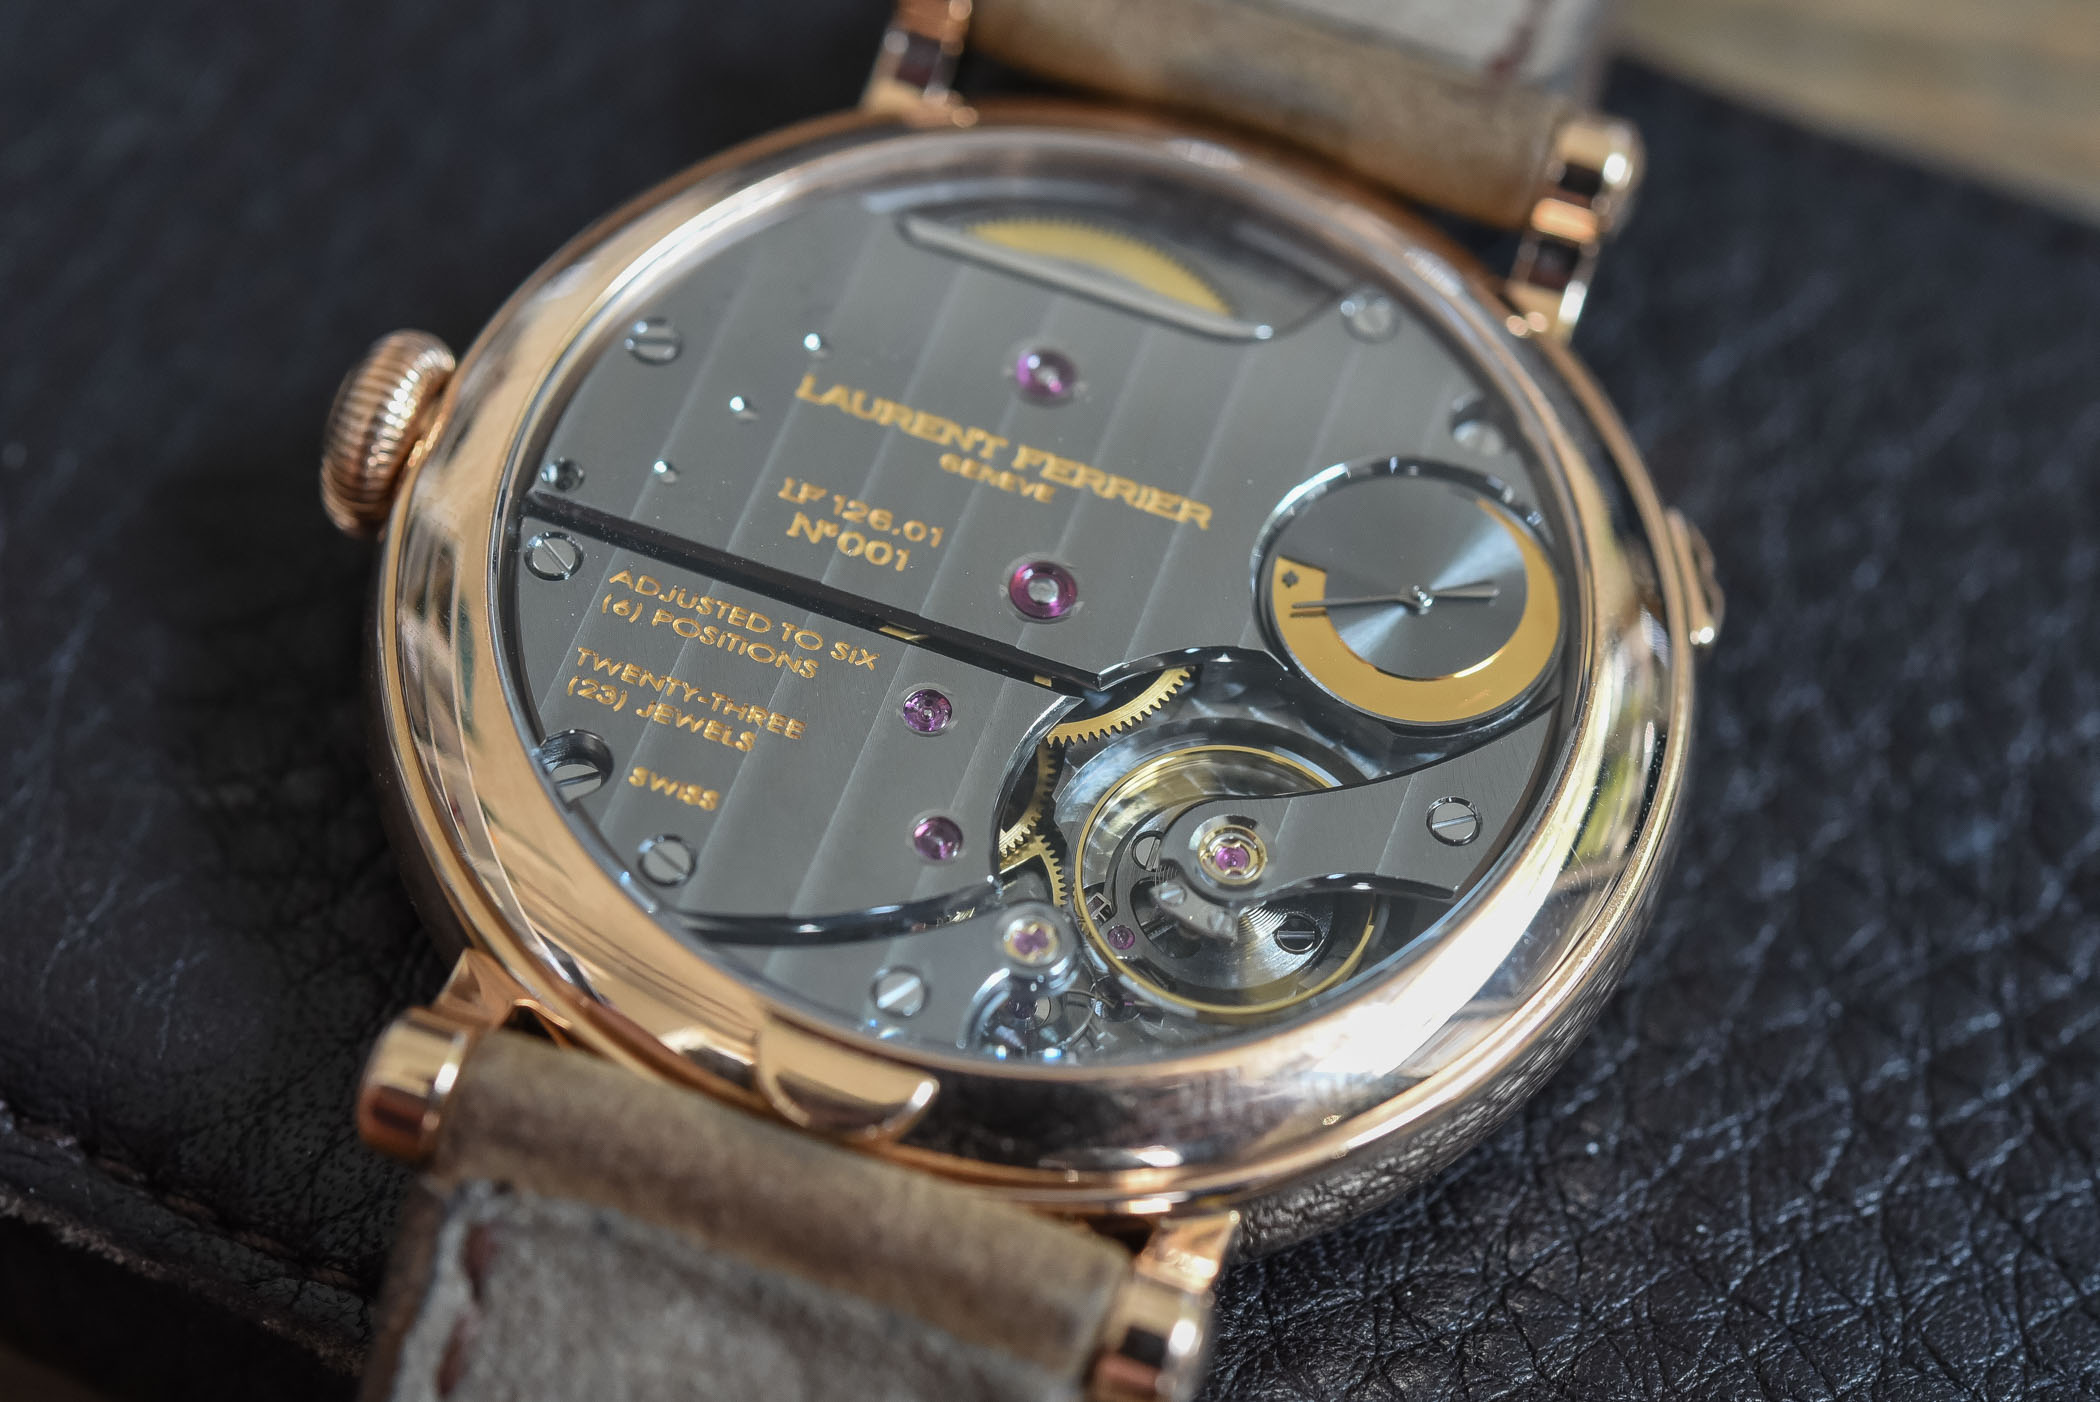 Laurent Ferrier Annual Calendar School Piece - Battle of High-End Annual Calendar Watches